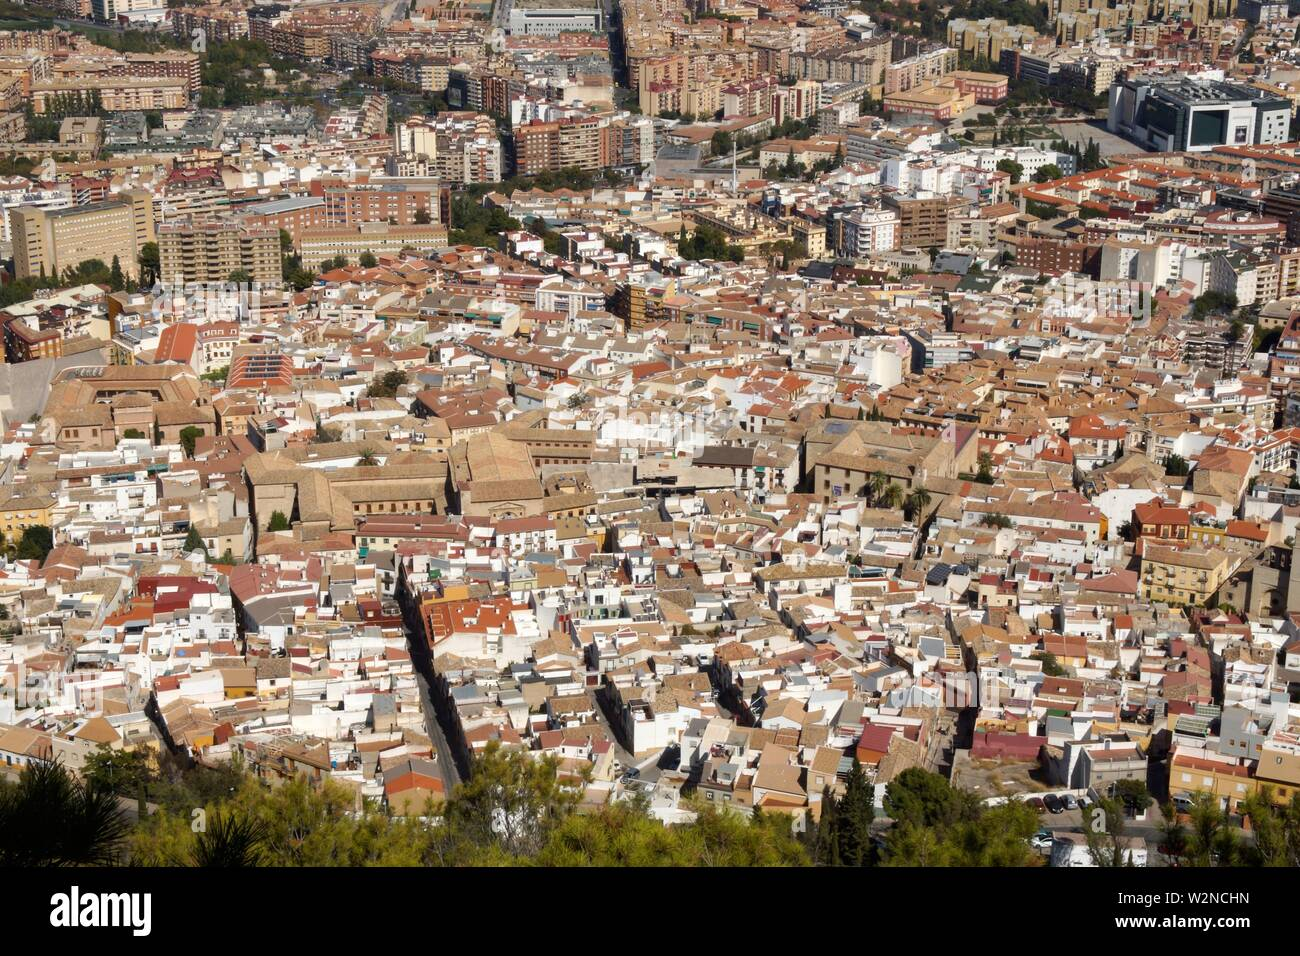 Jaén (Spain). Overview of the historic center of the city of Jaén. - Stock Image